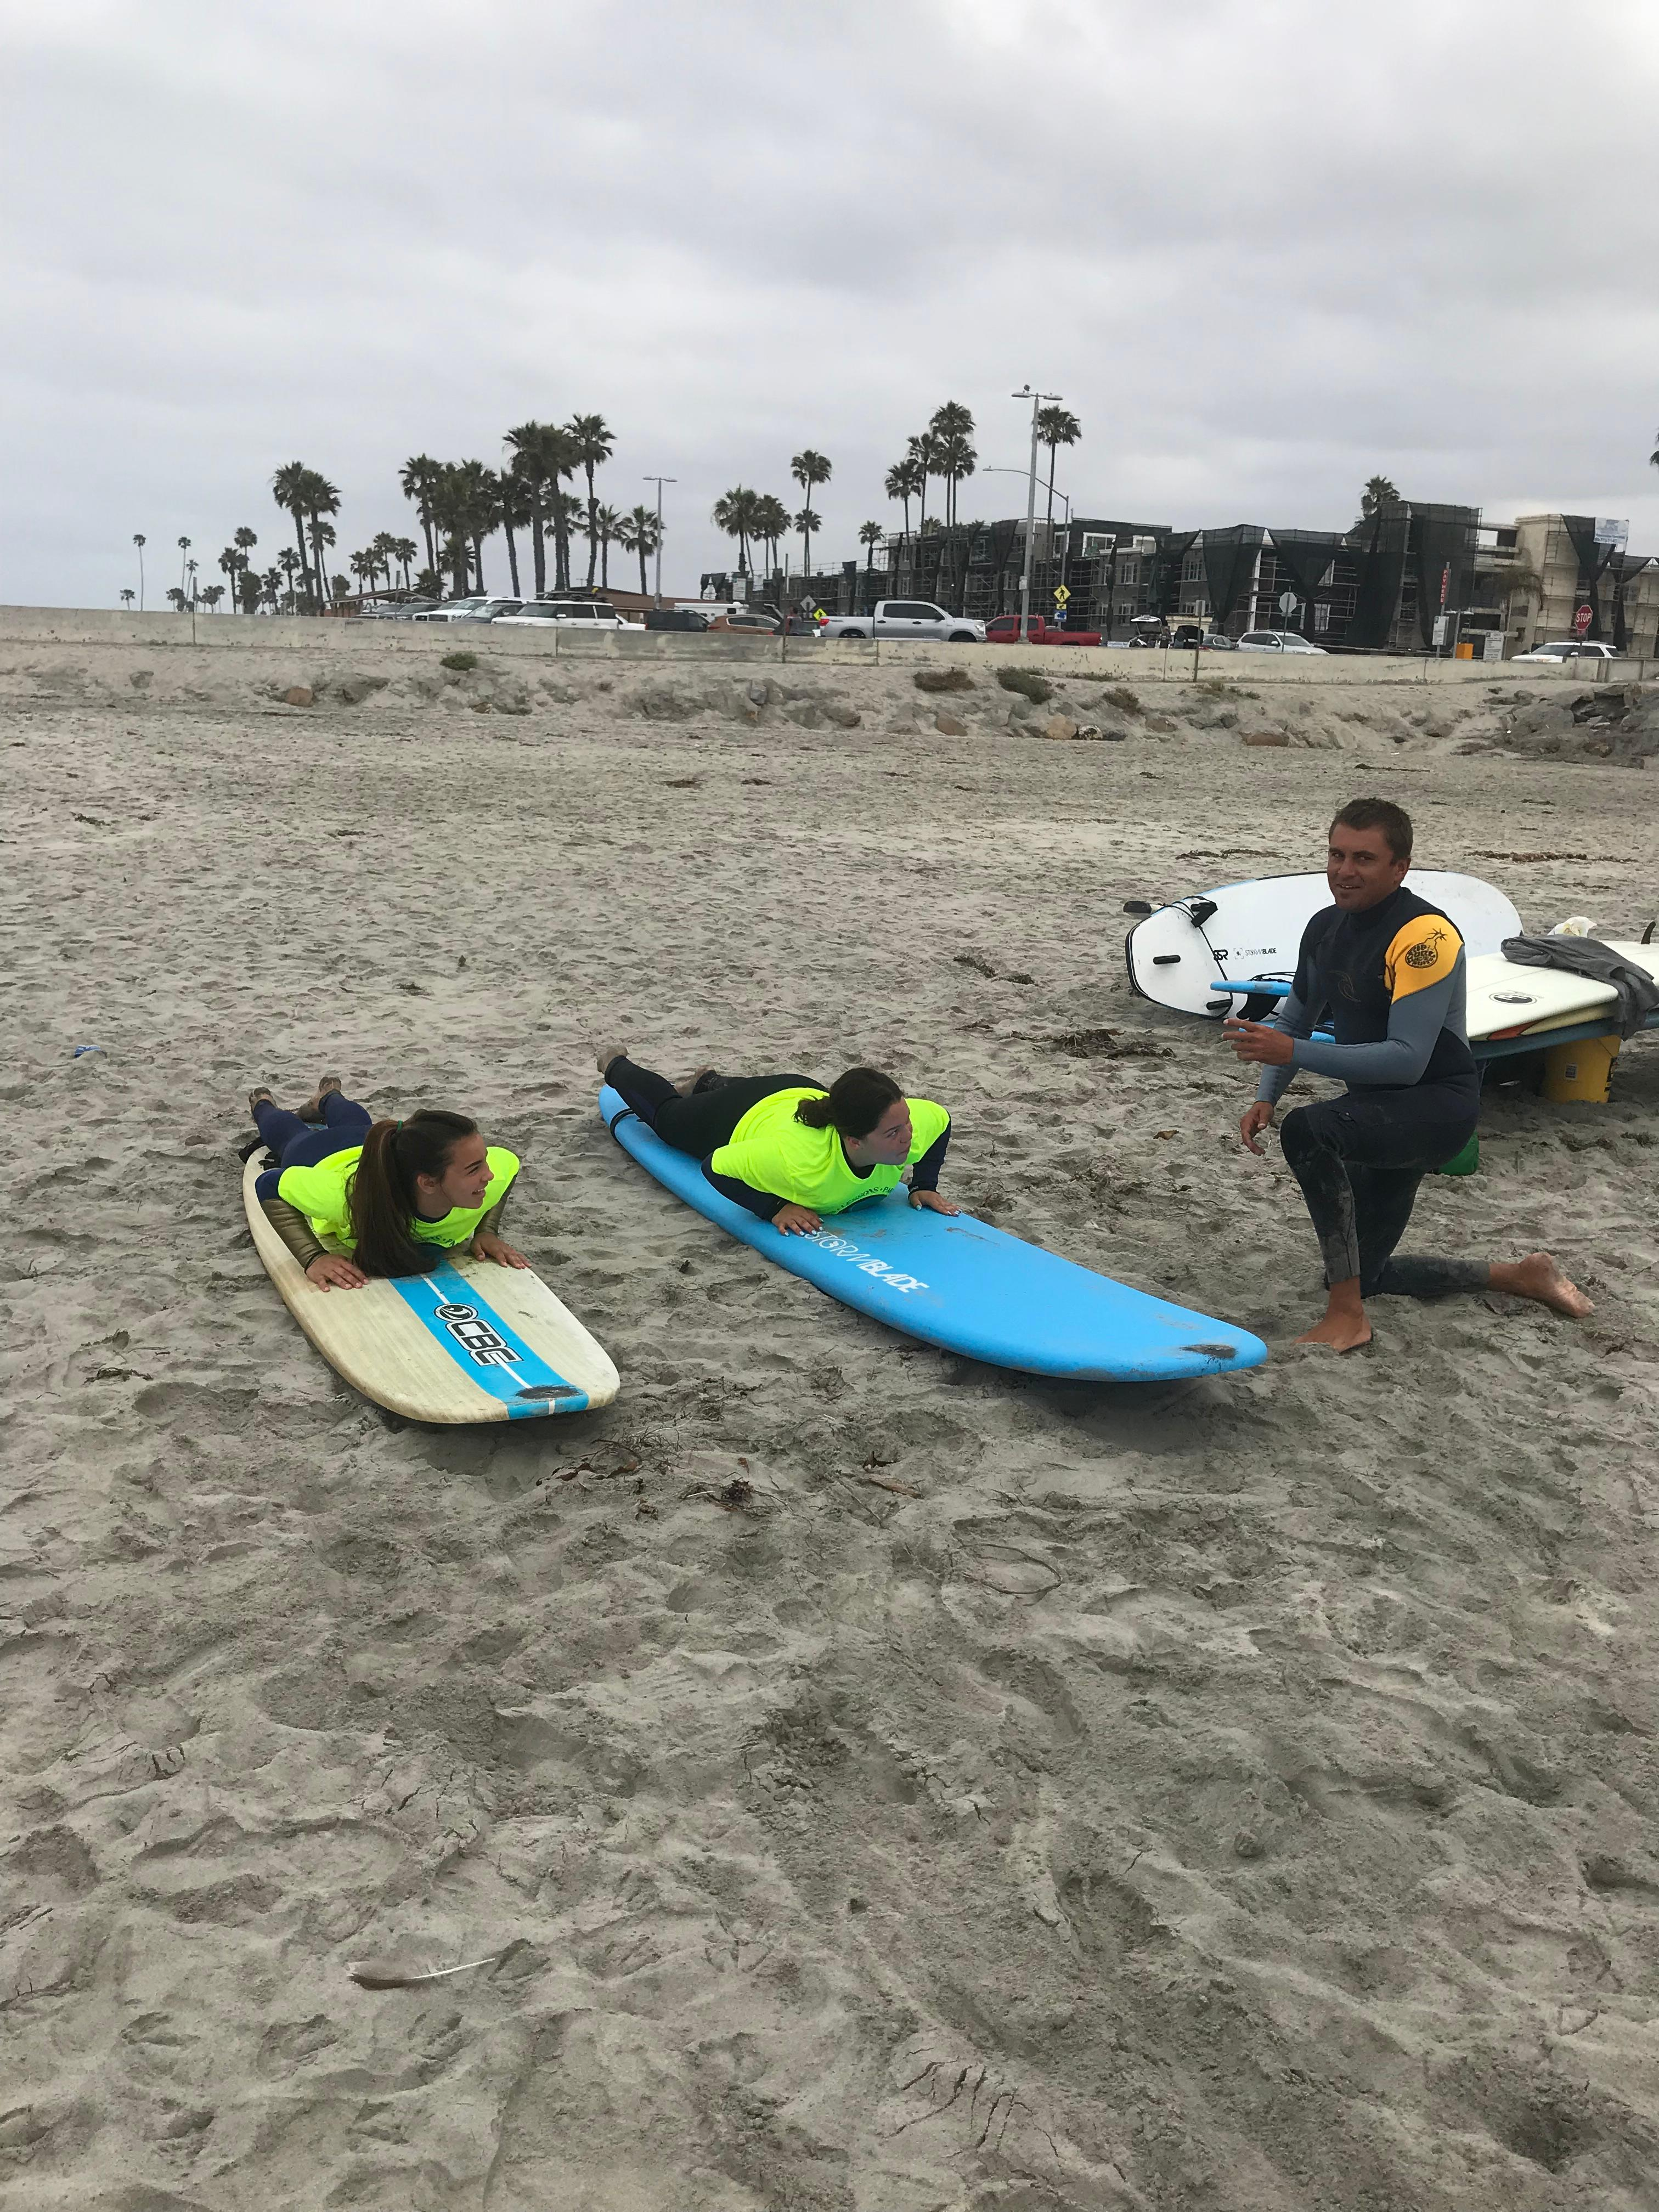 Learning a bit on the sand is the beginning, Safety, paddle, glide Pop up surf, Smile. What a story to share. book at sandiegosurf.com